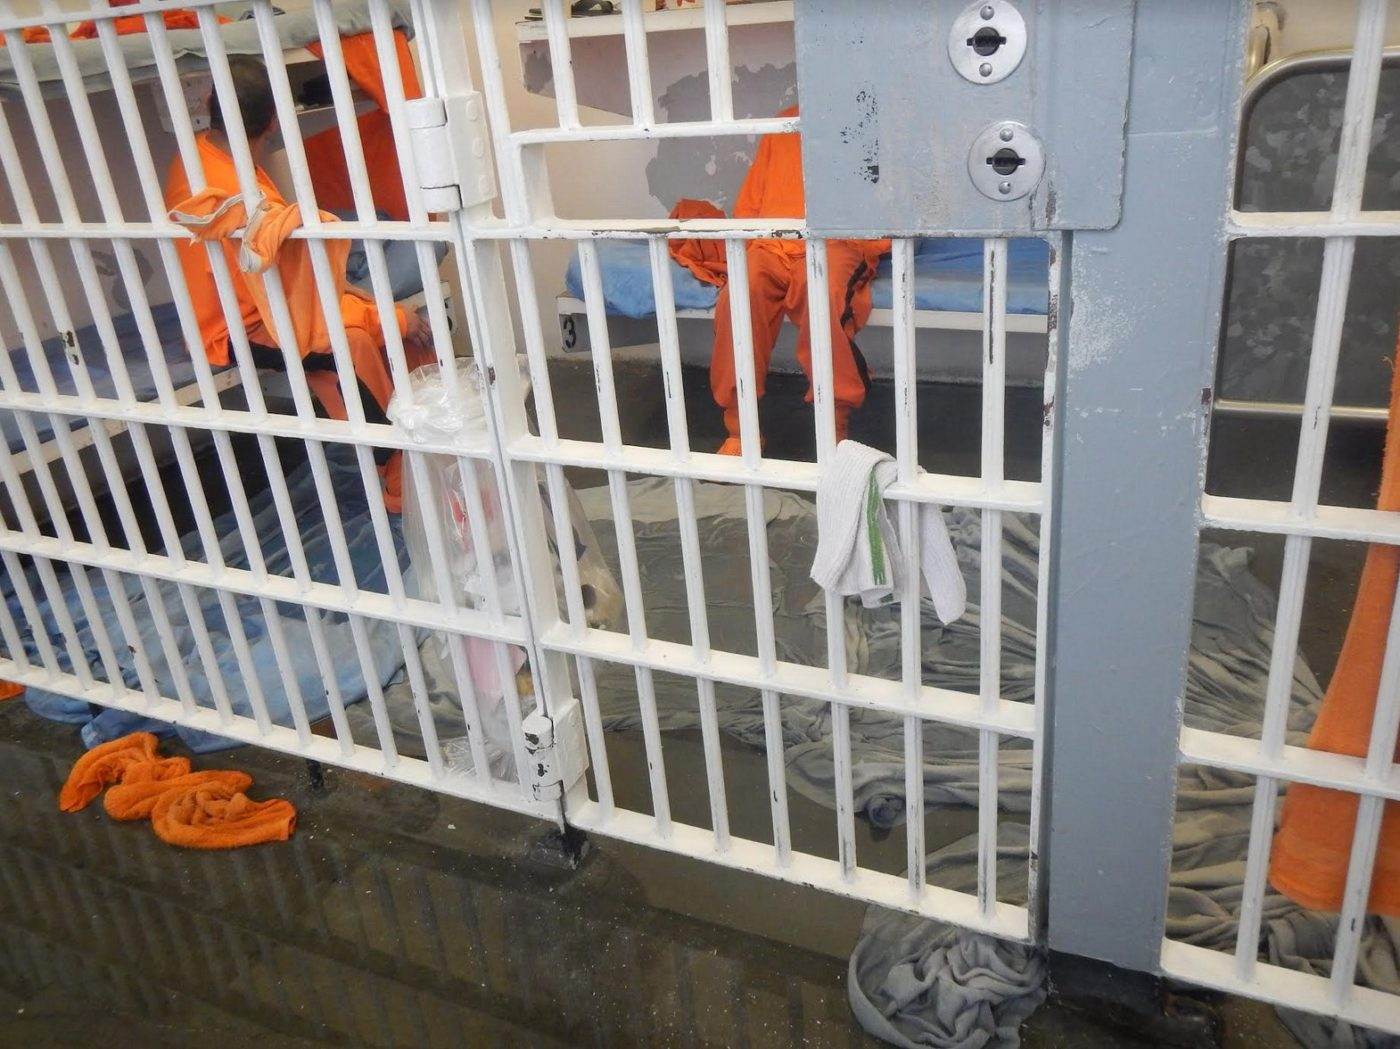 SF-County-Jail-850-Bryant-sewage-spill-2017-prisoners-on-bunks-blankets-sopping-up-sewage-1400x1049, 50+ organizations demand San Francisco release people from jails to mitigate COVID-19 spread, Behind Enemy Lines